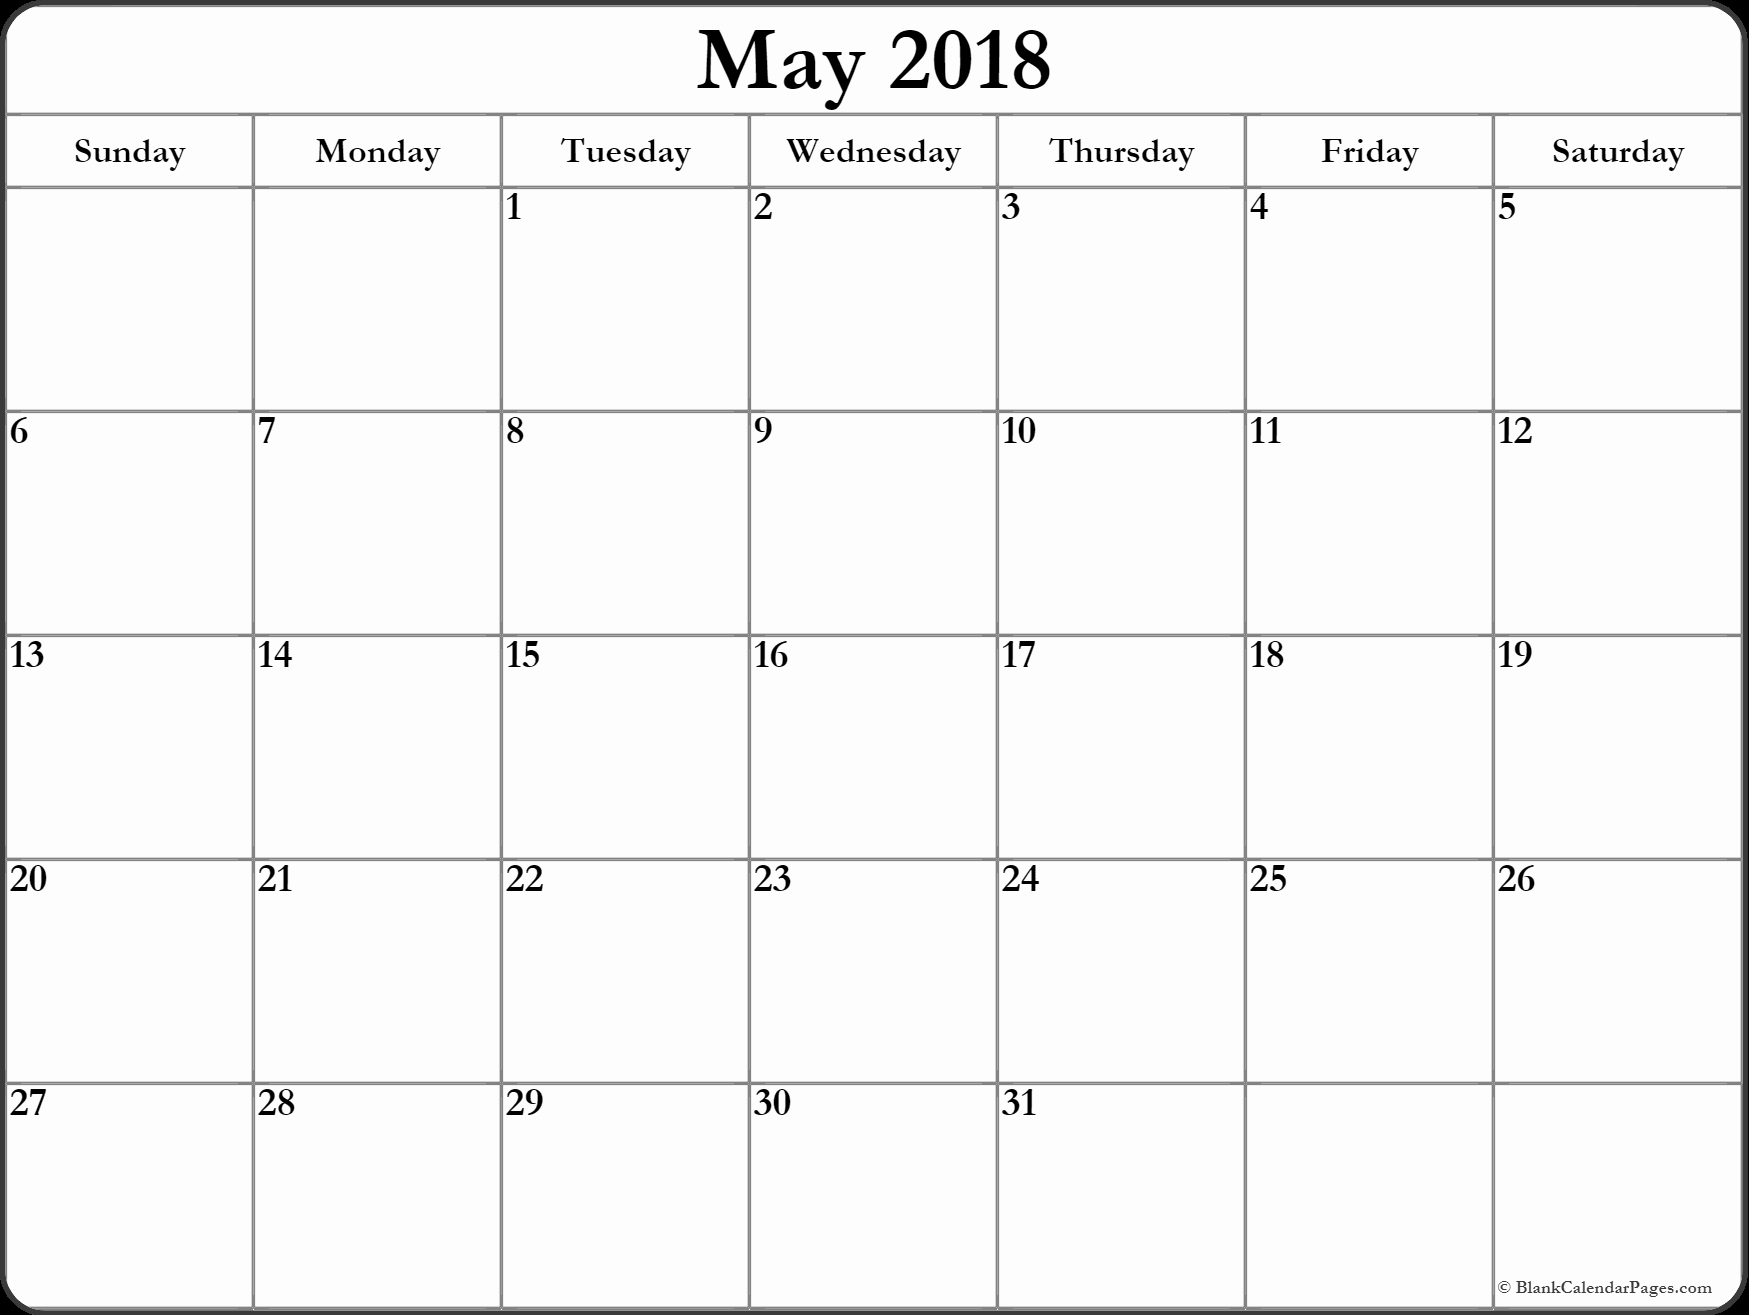 Free May 2018 Calendar Template Best Of May 2018 Printable Calendar 8 Free Blank Templates